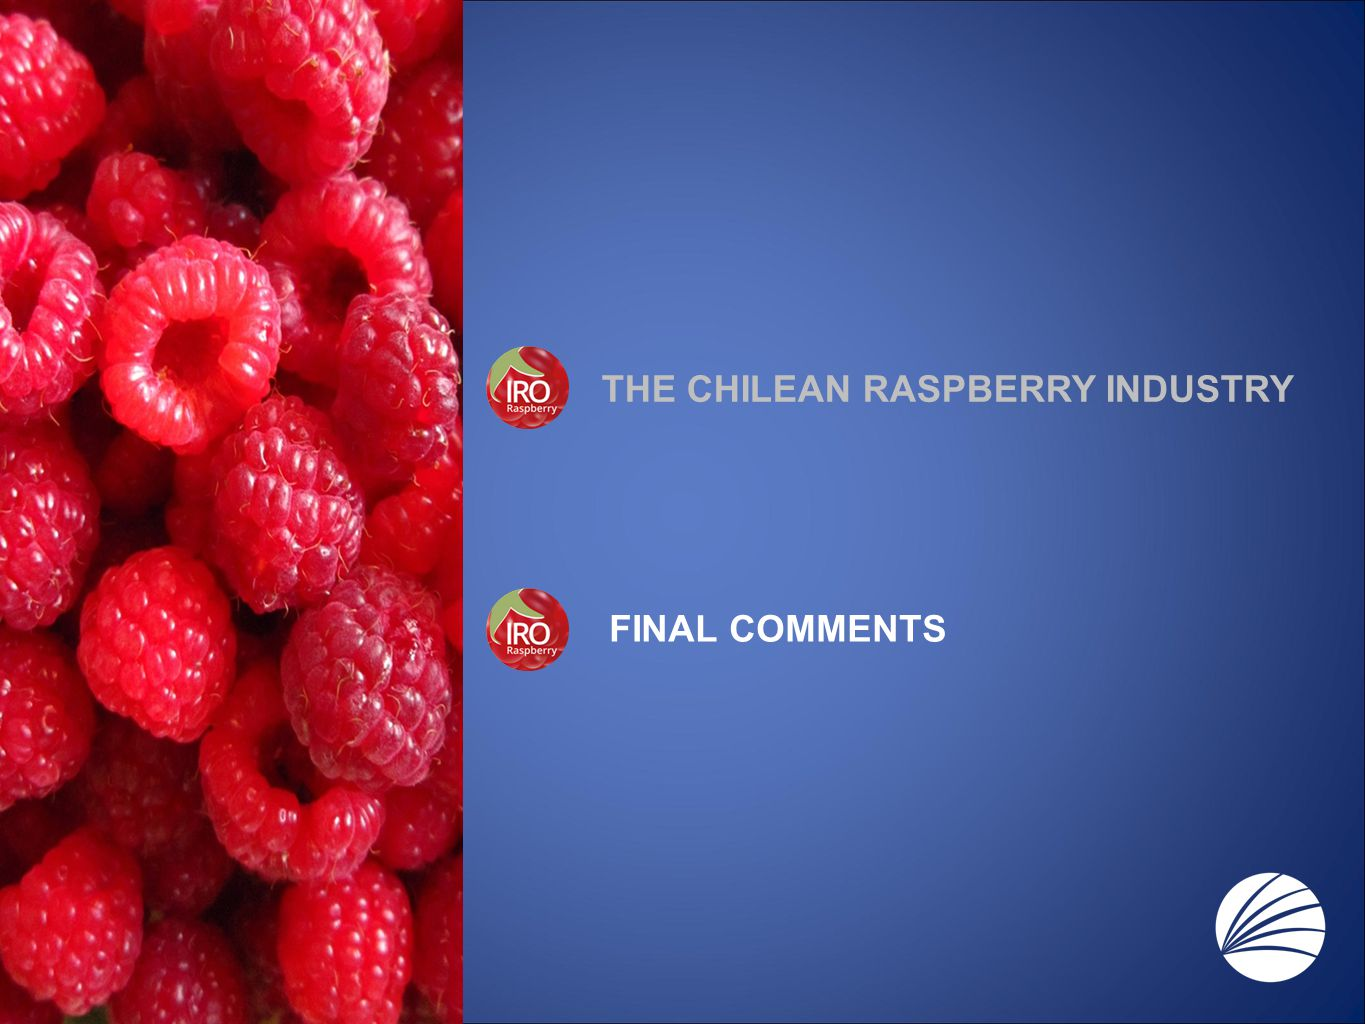 THE CHILEAN RASPBERRY INDUSTRY